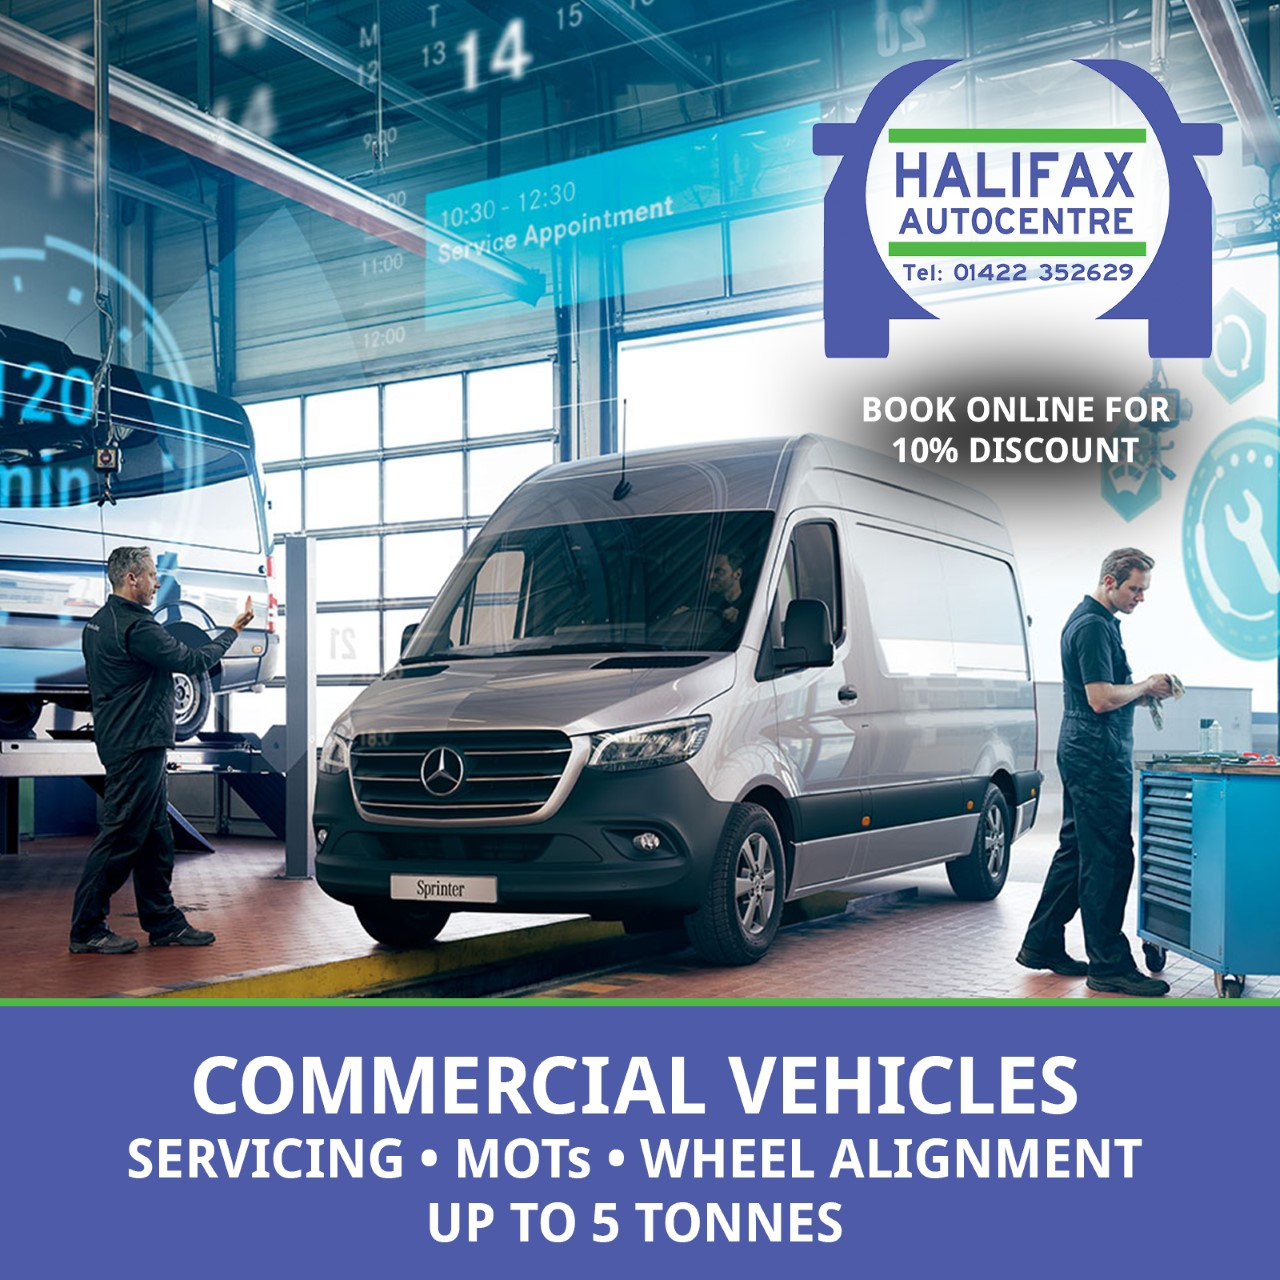 Halifax Autocentre - Commercial Vehicle MOTs